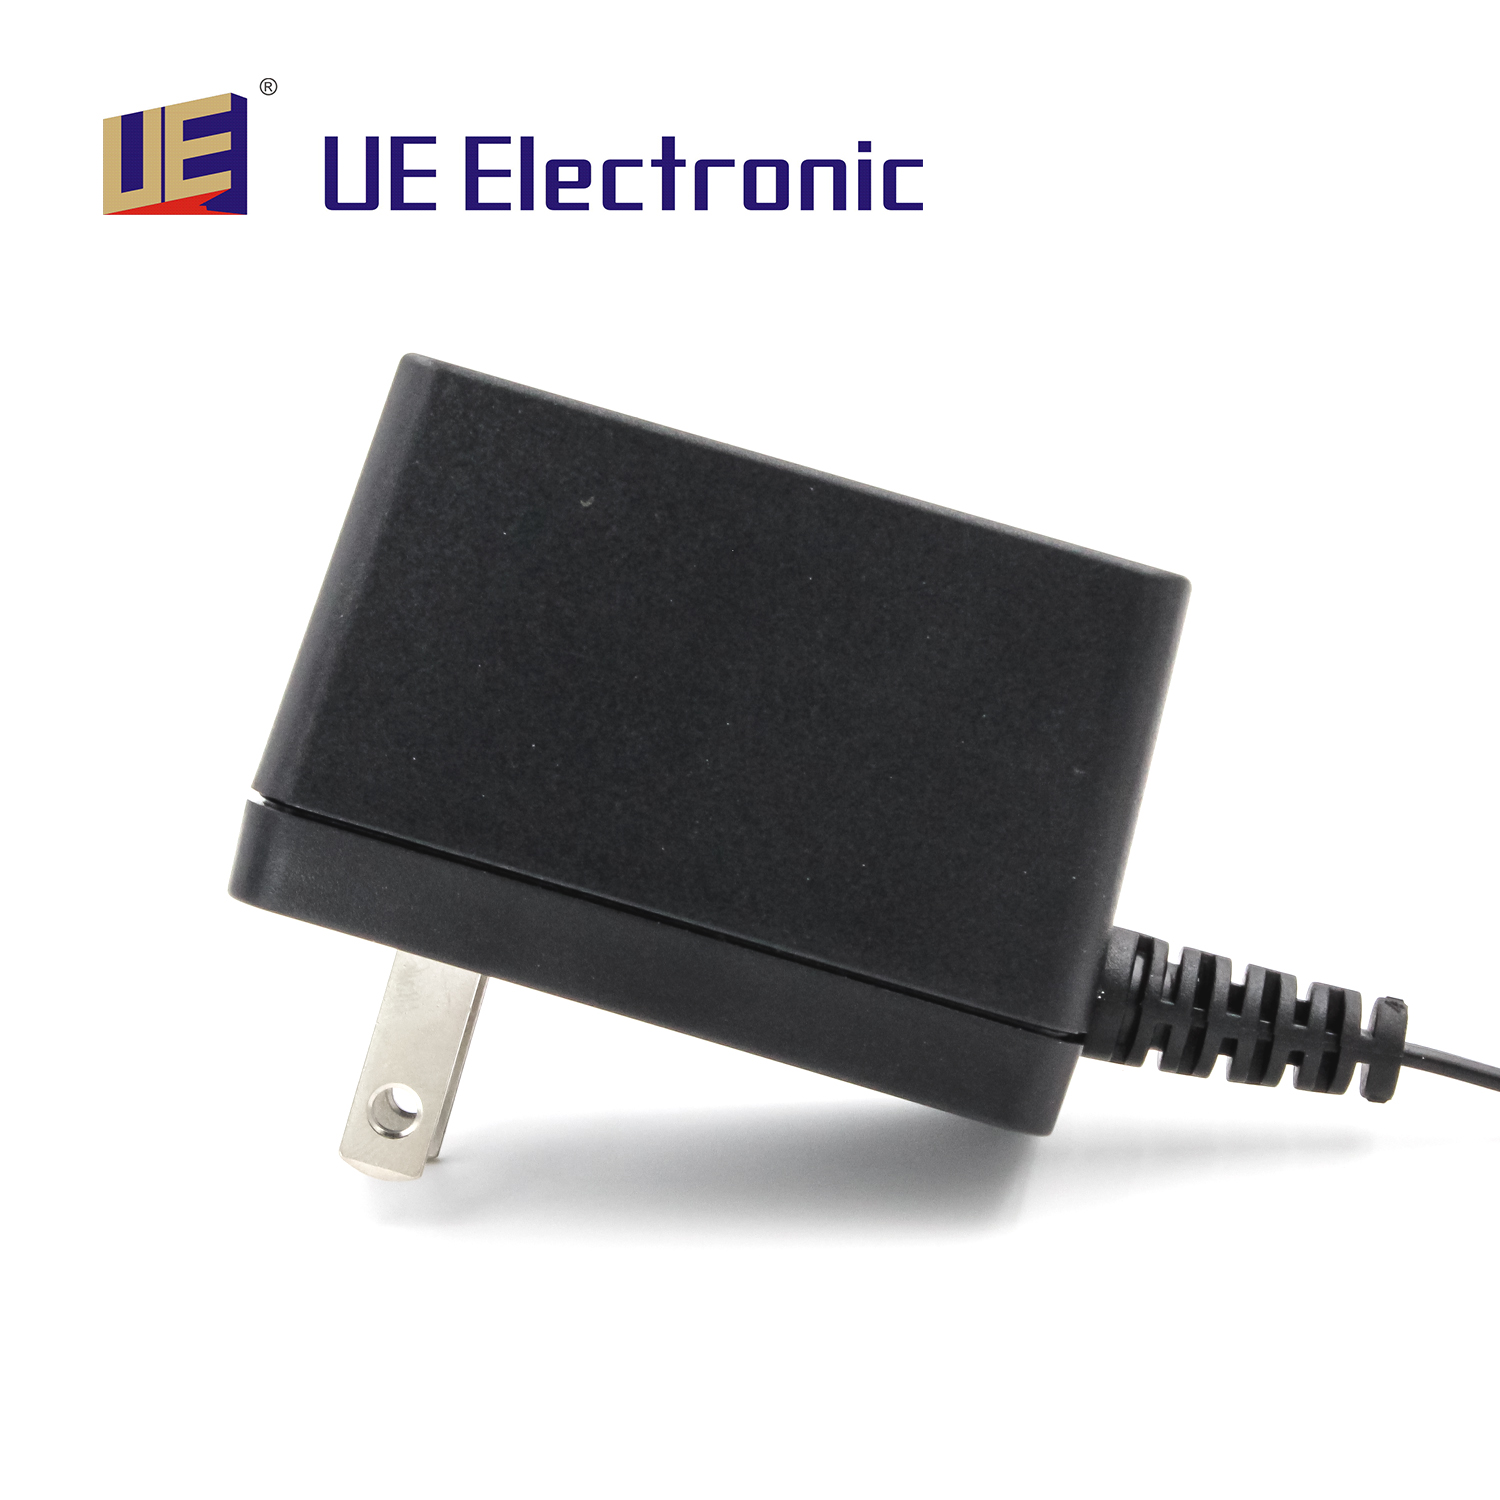 UE Electronic 12 watts switching power adaptor power adapter with interchangeable AC plugs